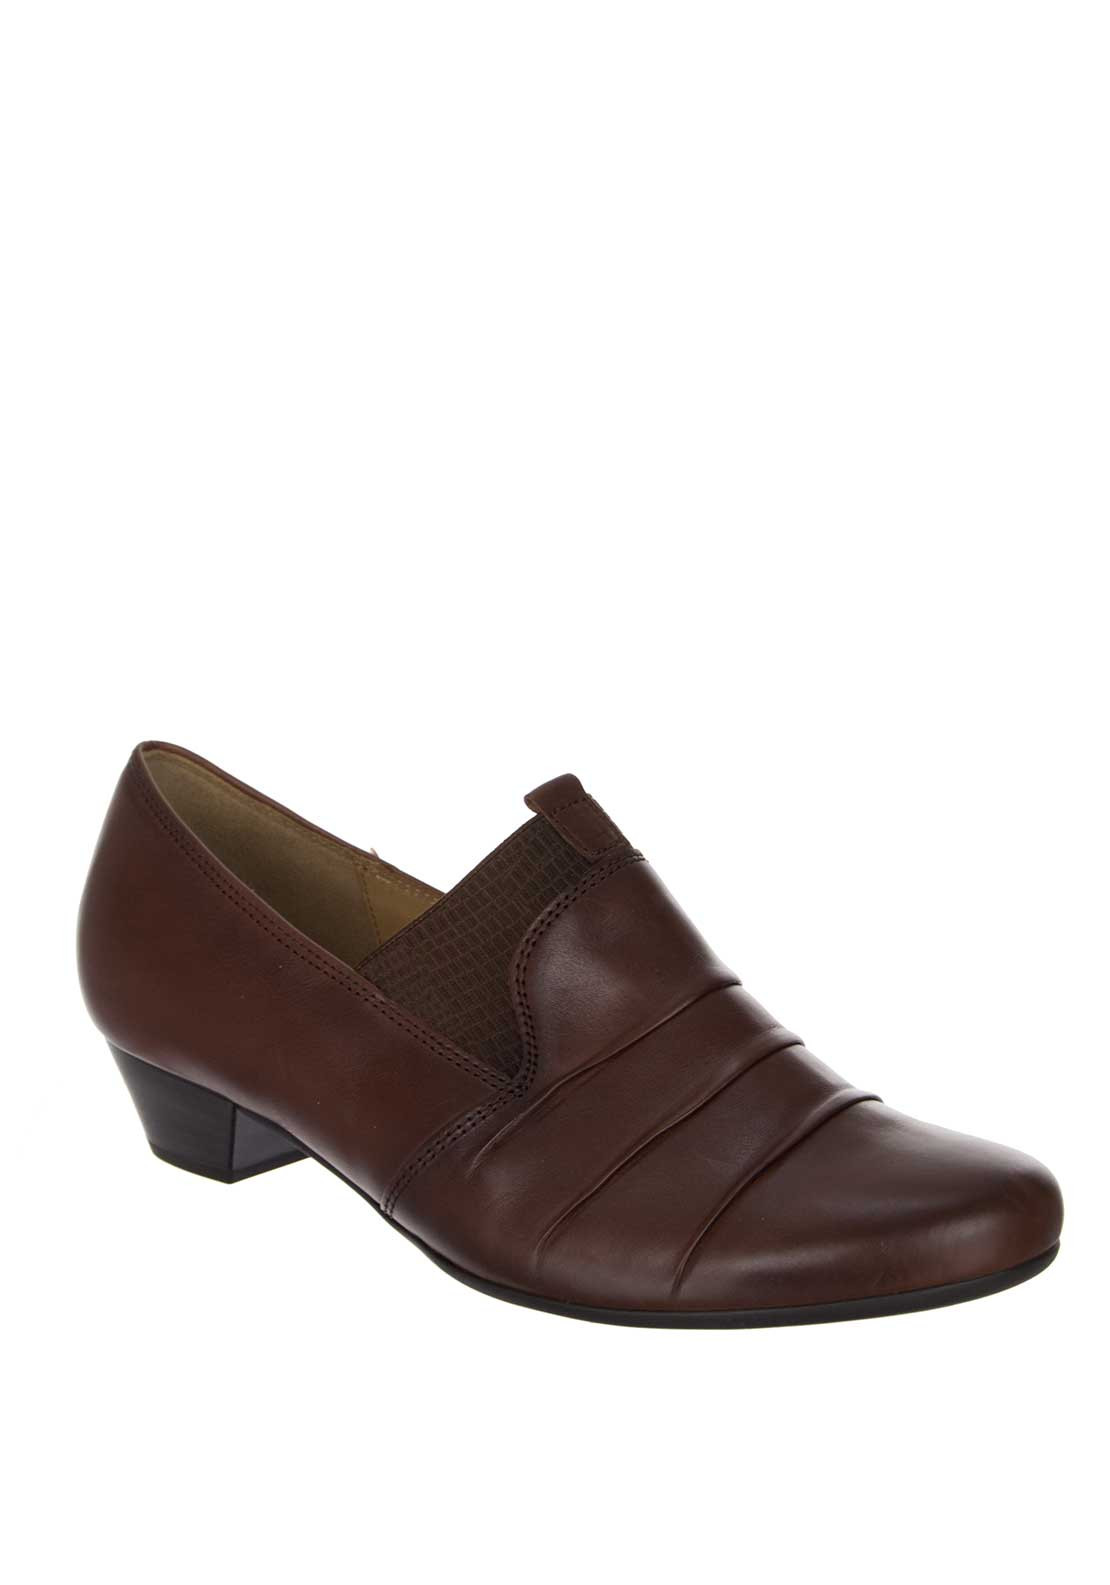 Gabor Comfort G Fitting Shoes